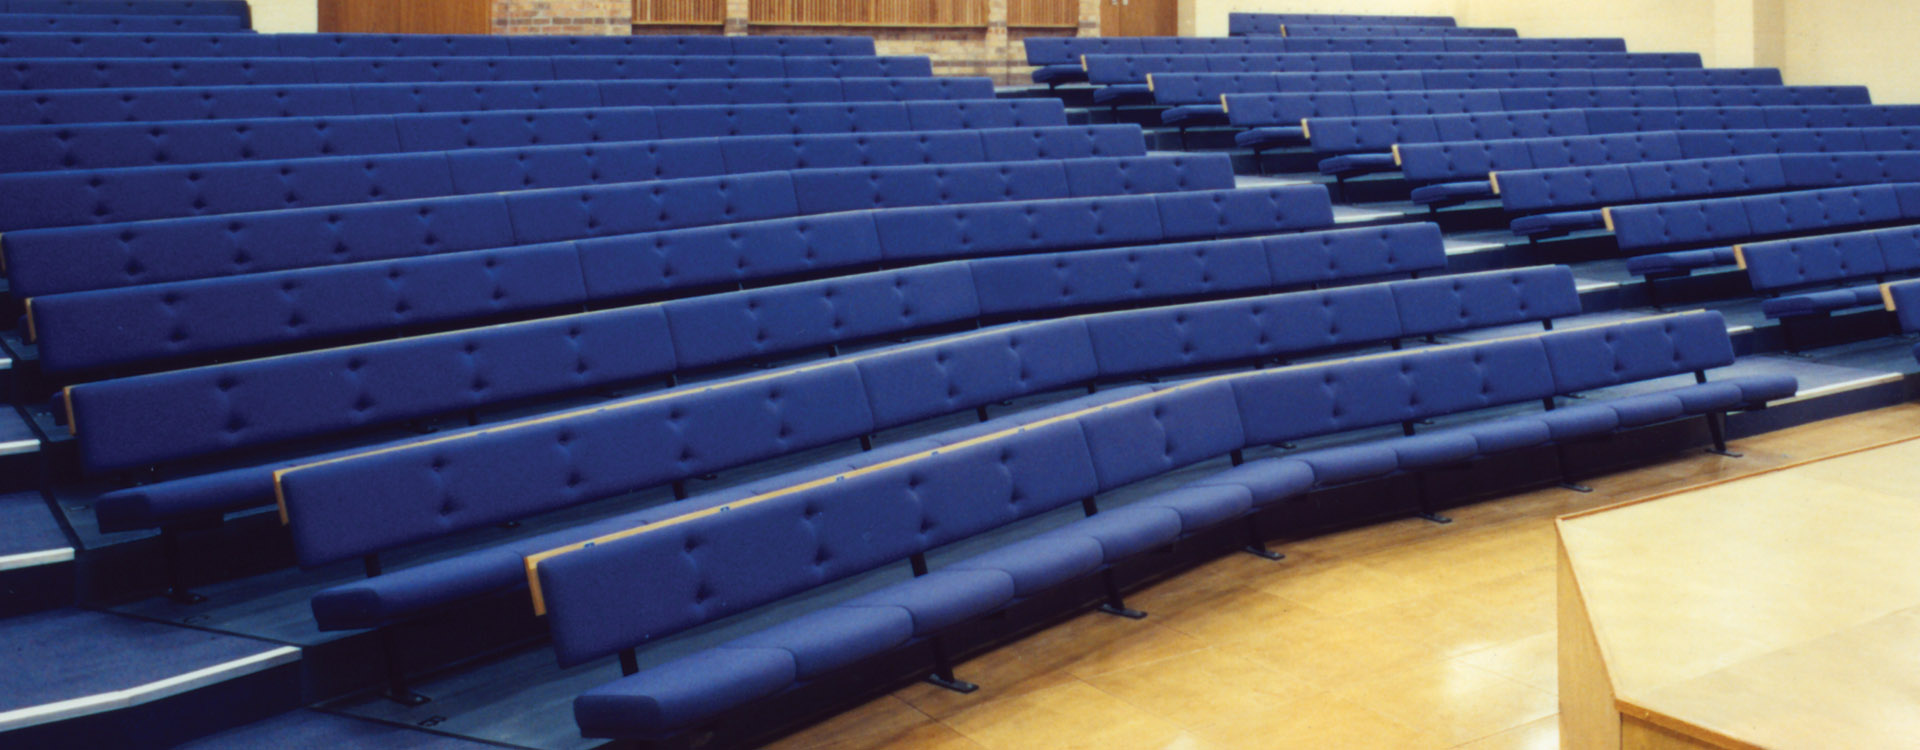 Bench Seating Lecture Theatre Cps Manufacturing